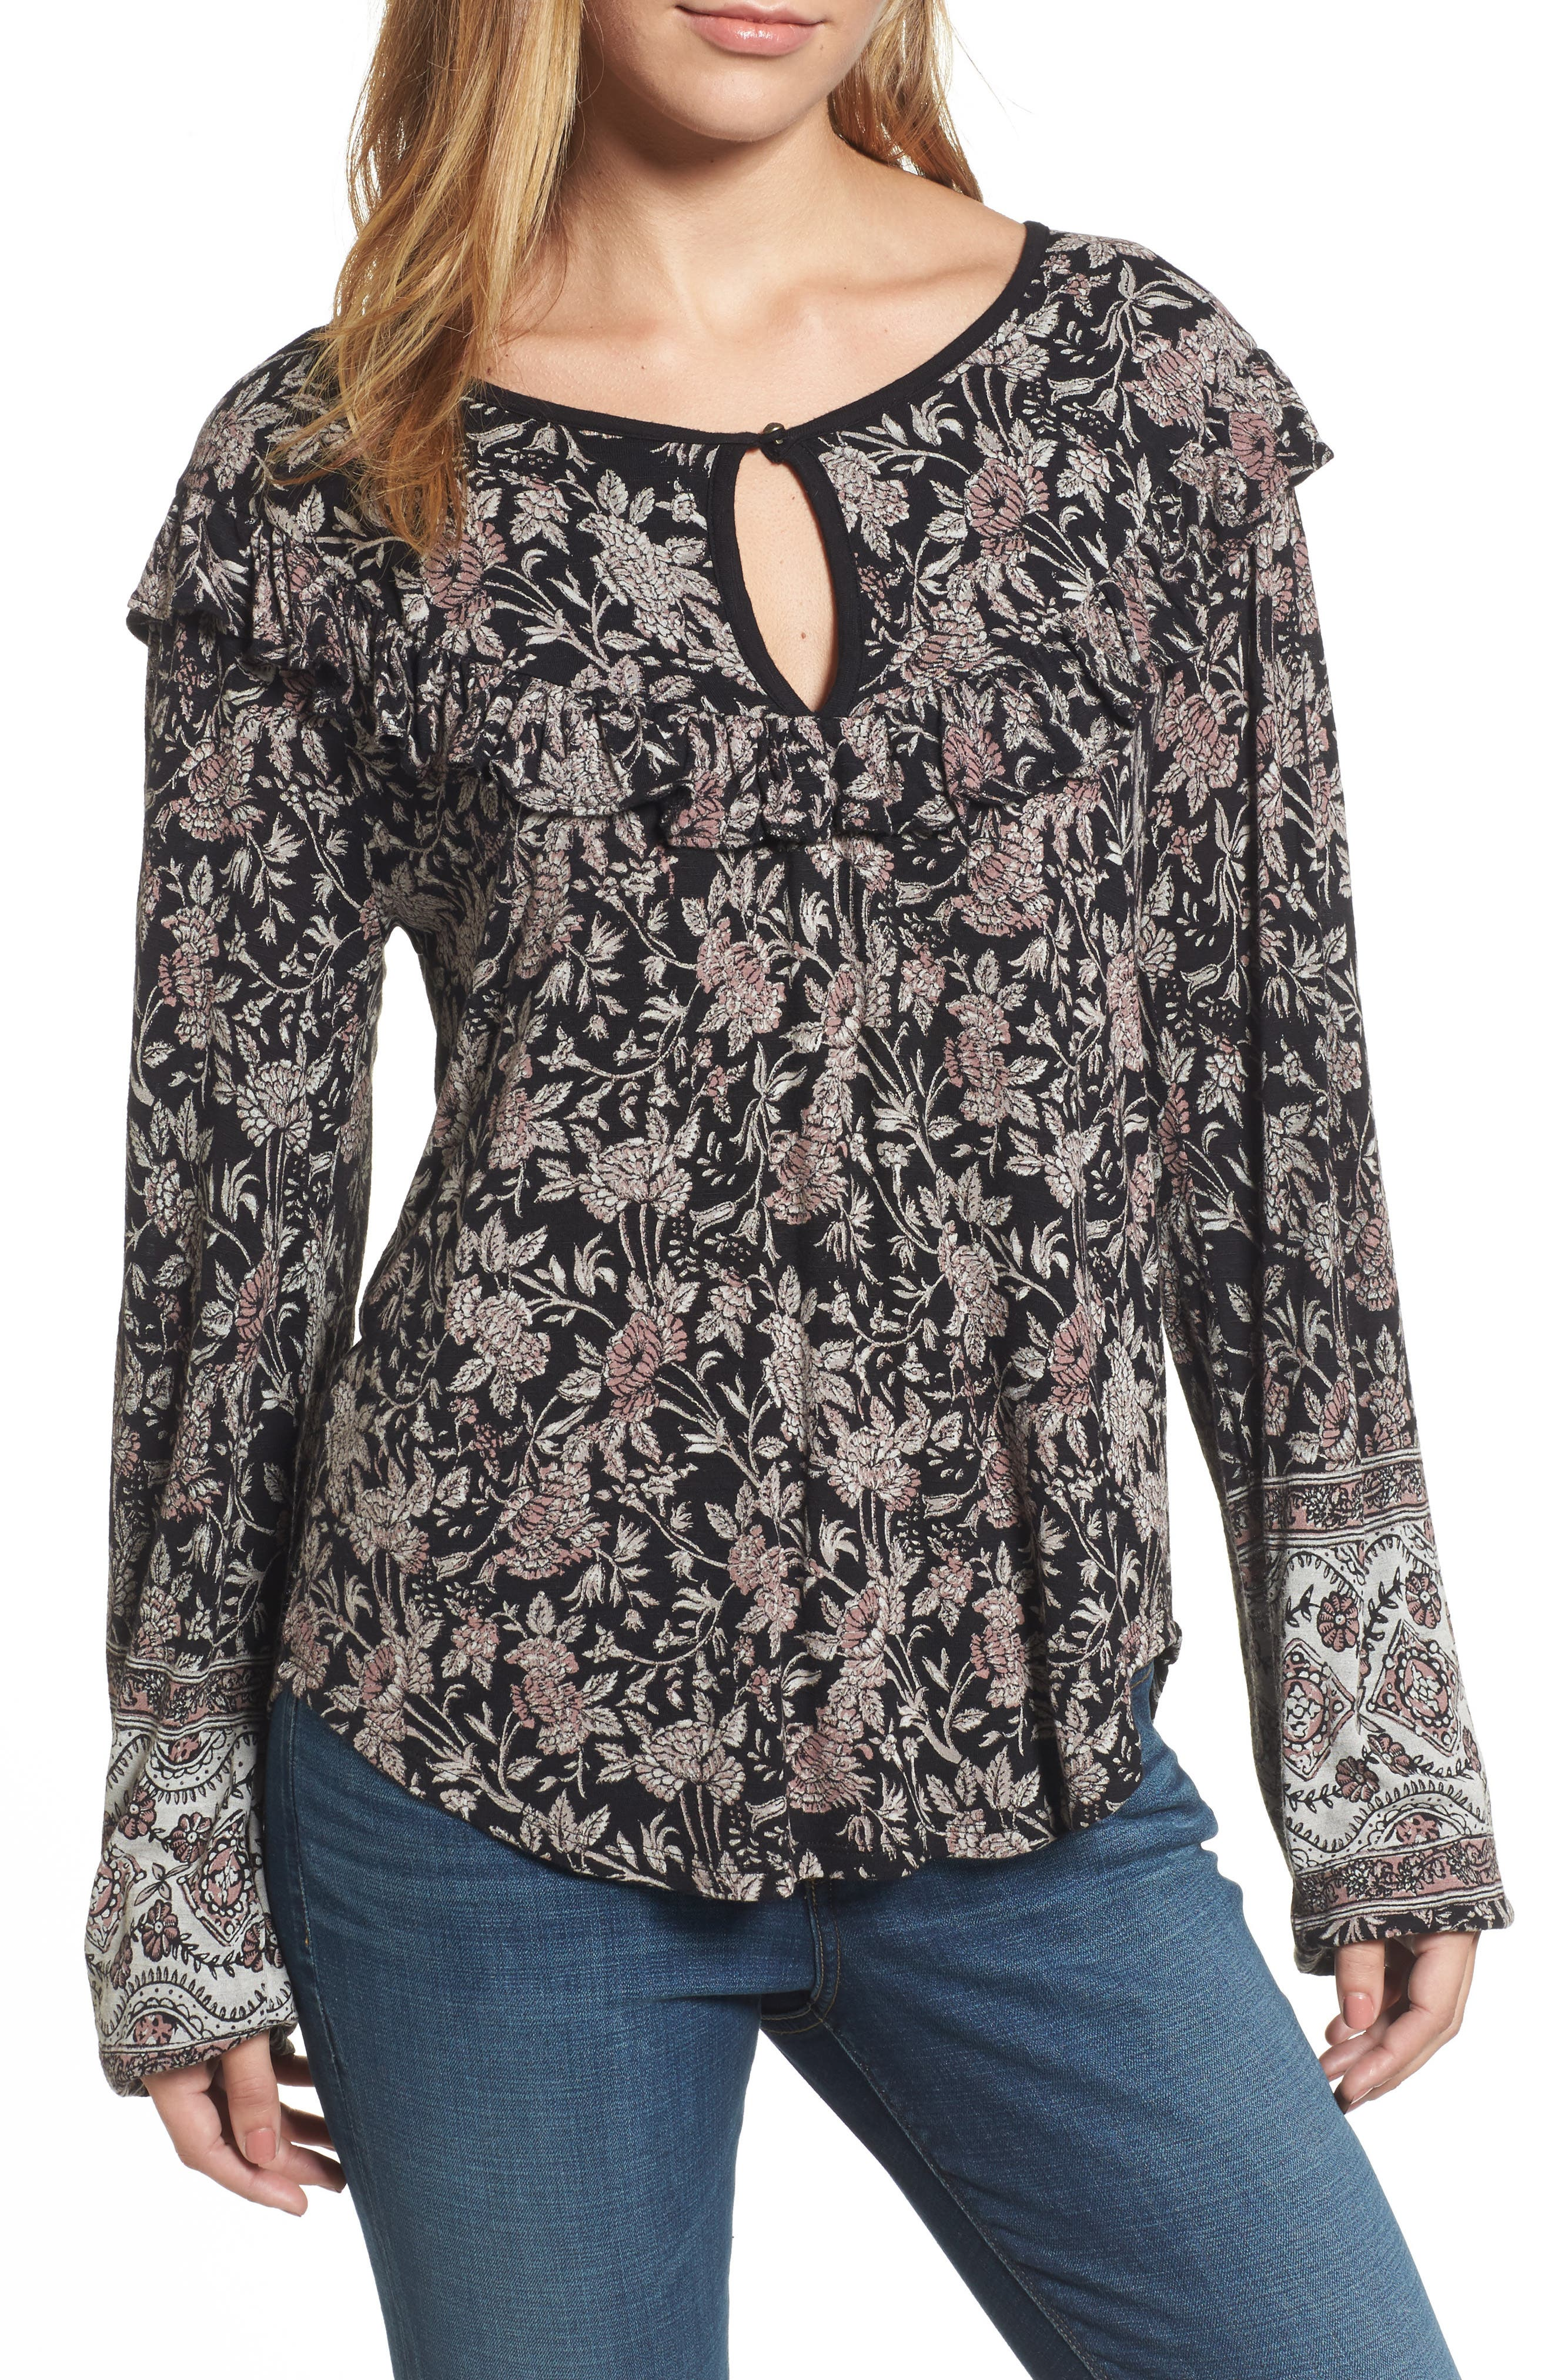 Alternate Image 1 Selected - Lucky Brand Mixed Floral Ruffle Top